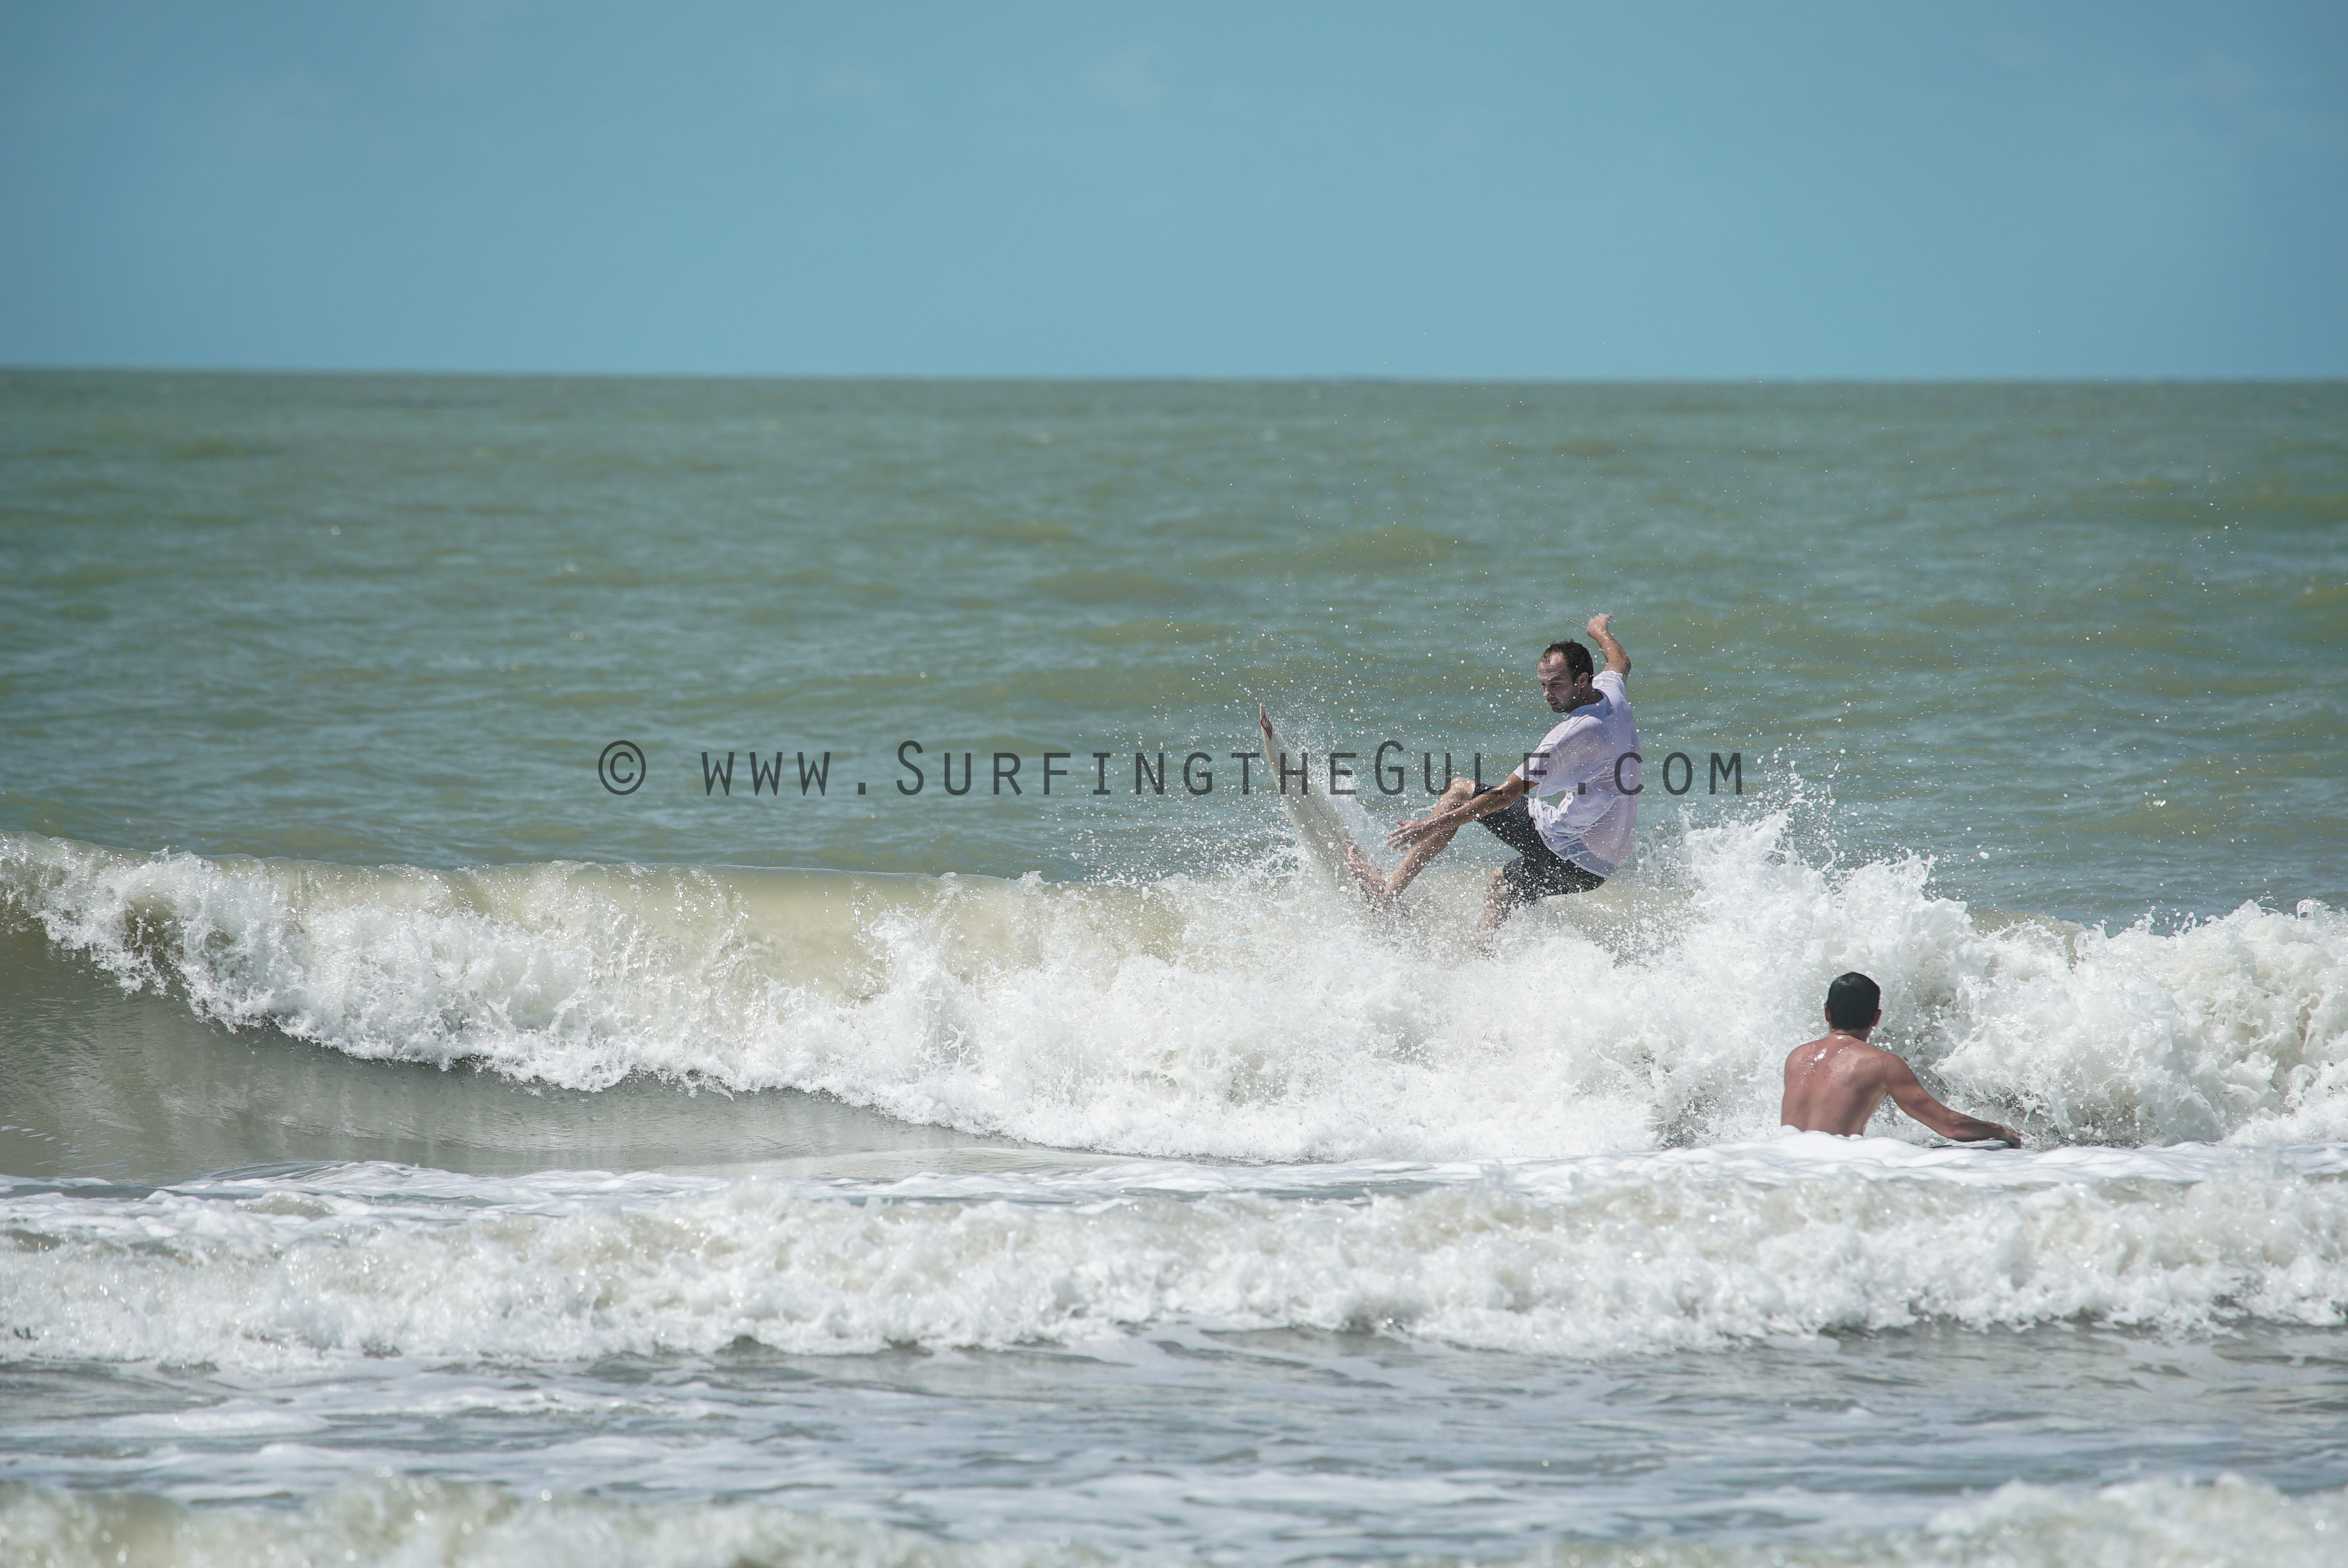 Hurricane irma surf pictures from 880 mandalay avenue www hurricane irma surf pictures from 880 mandalay avenue surfingthegulf nvjuhfo Image collections